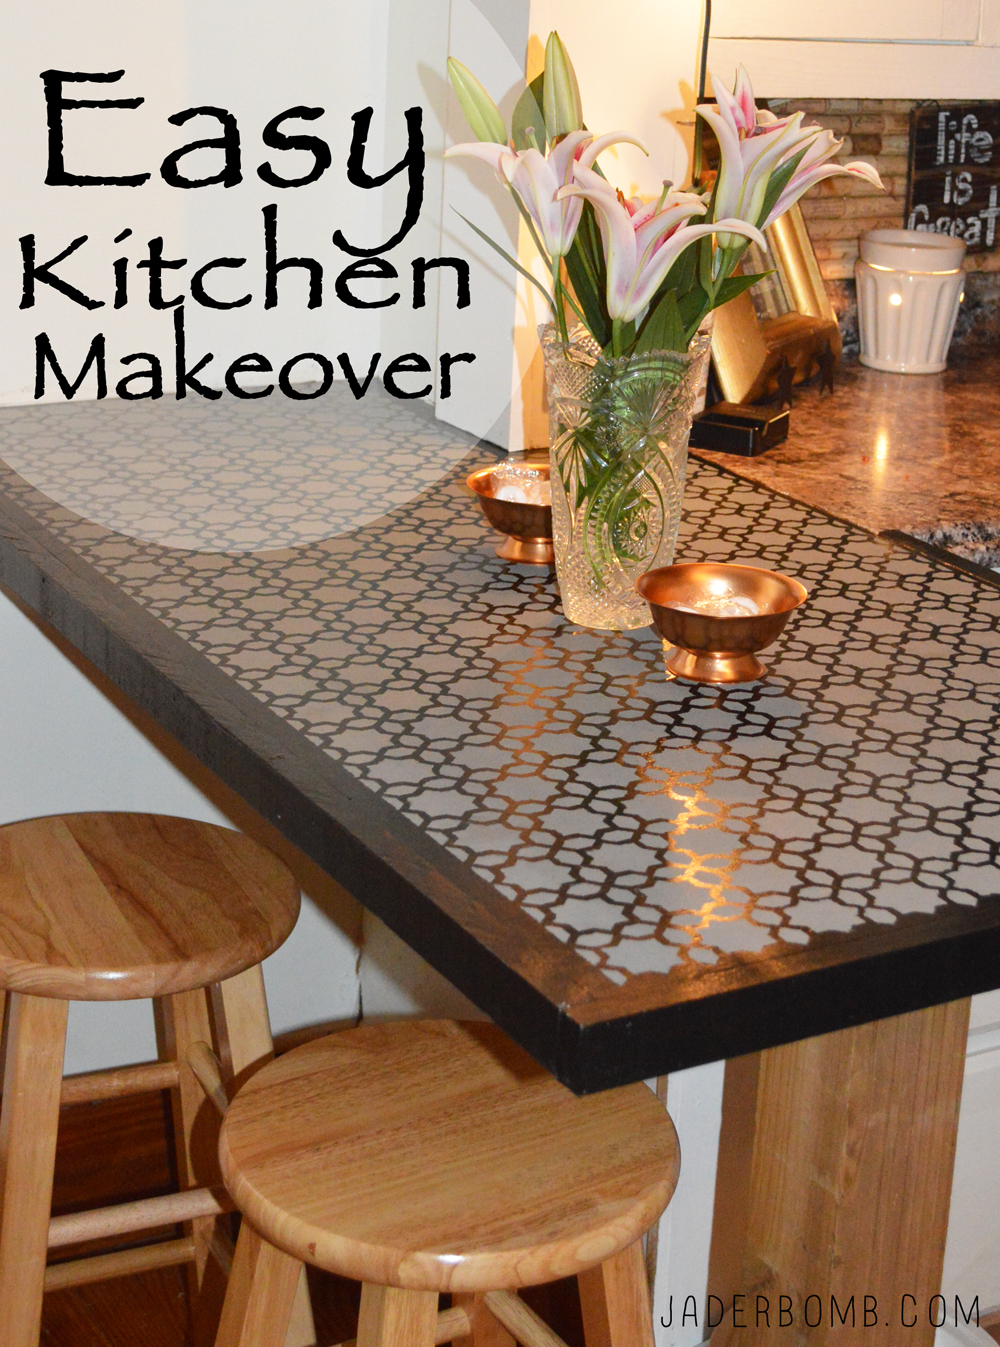 Easy Kitchen Makeover - Jaderbomb